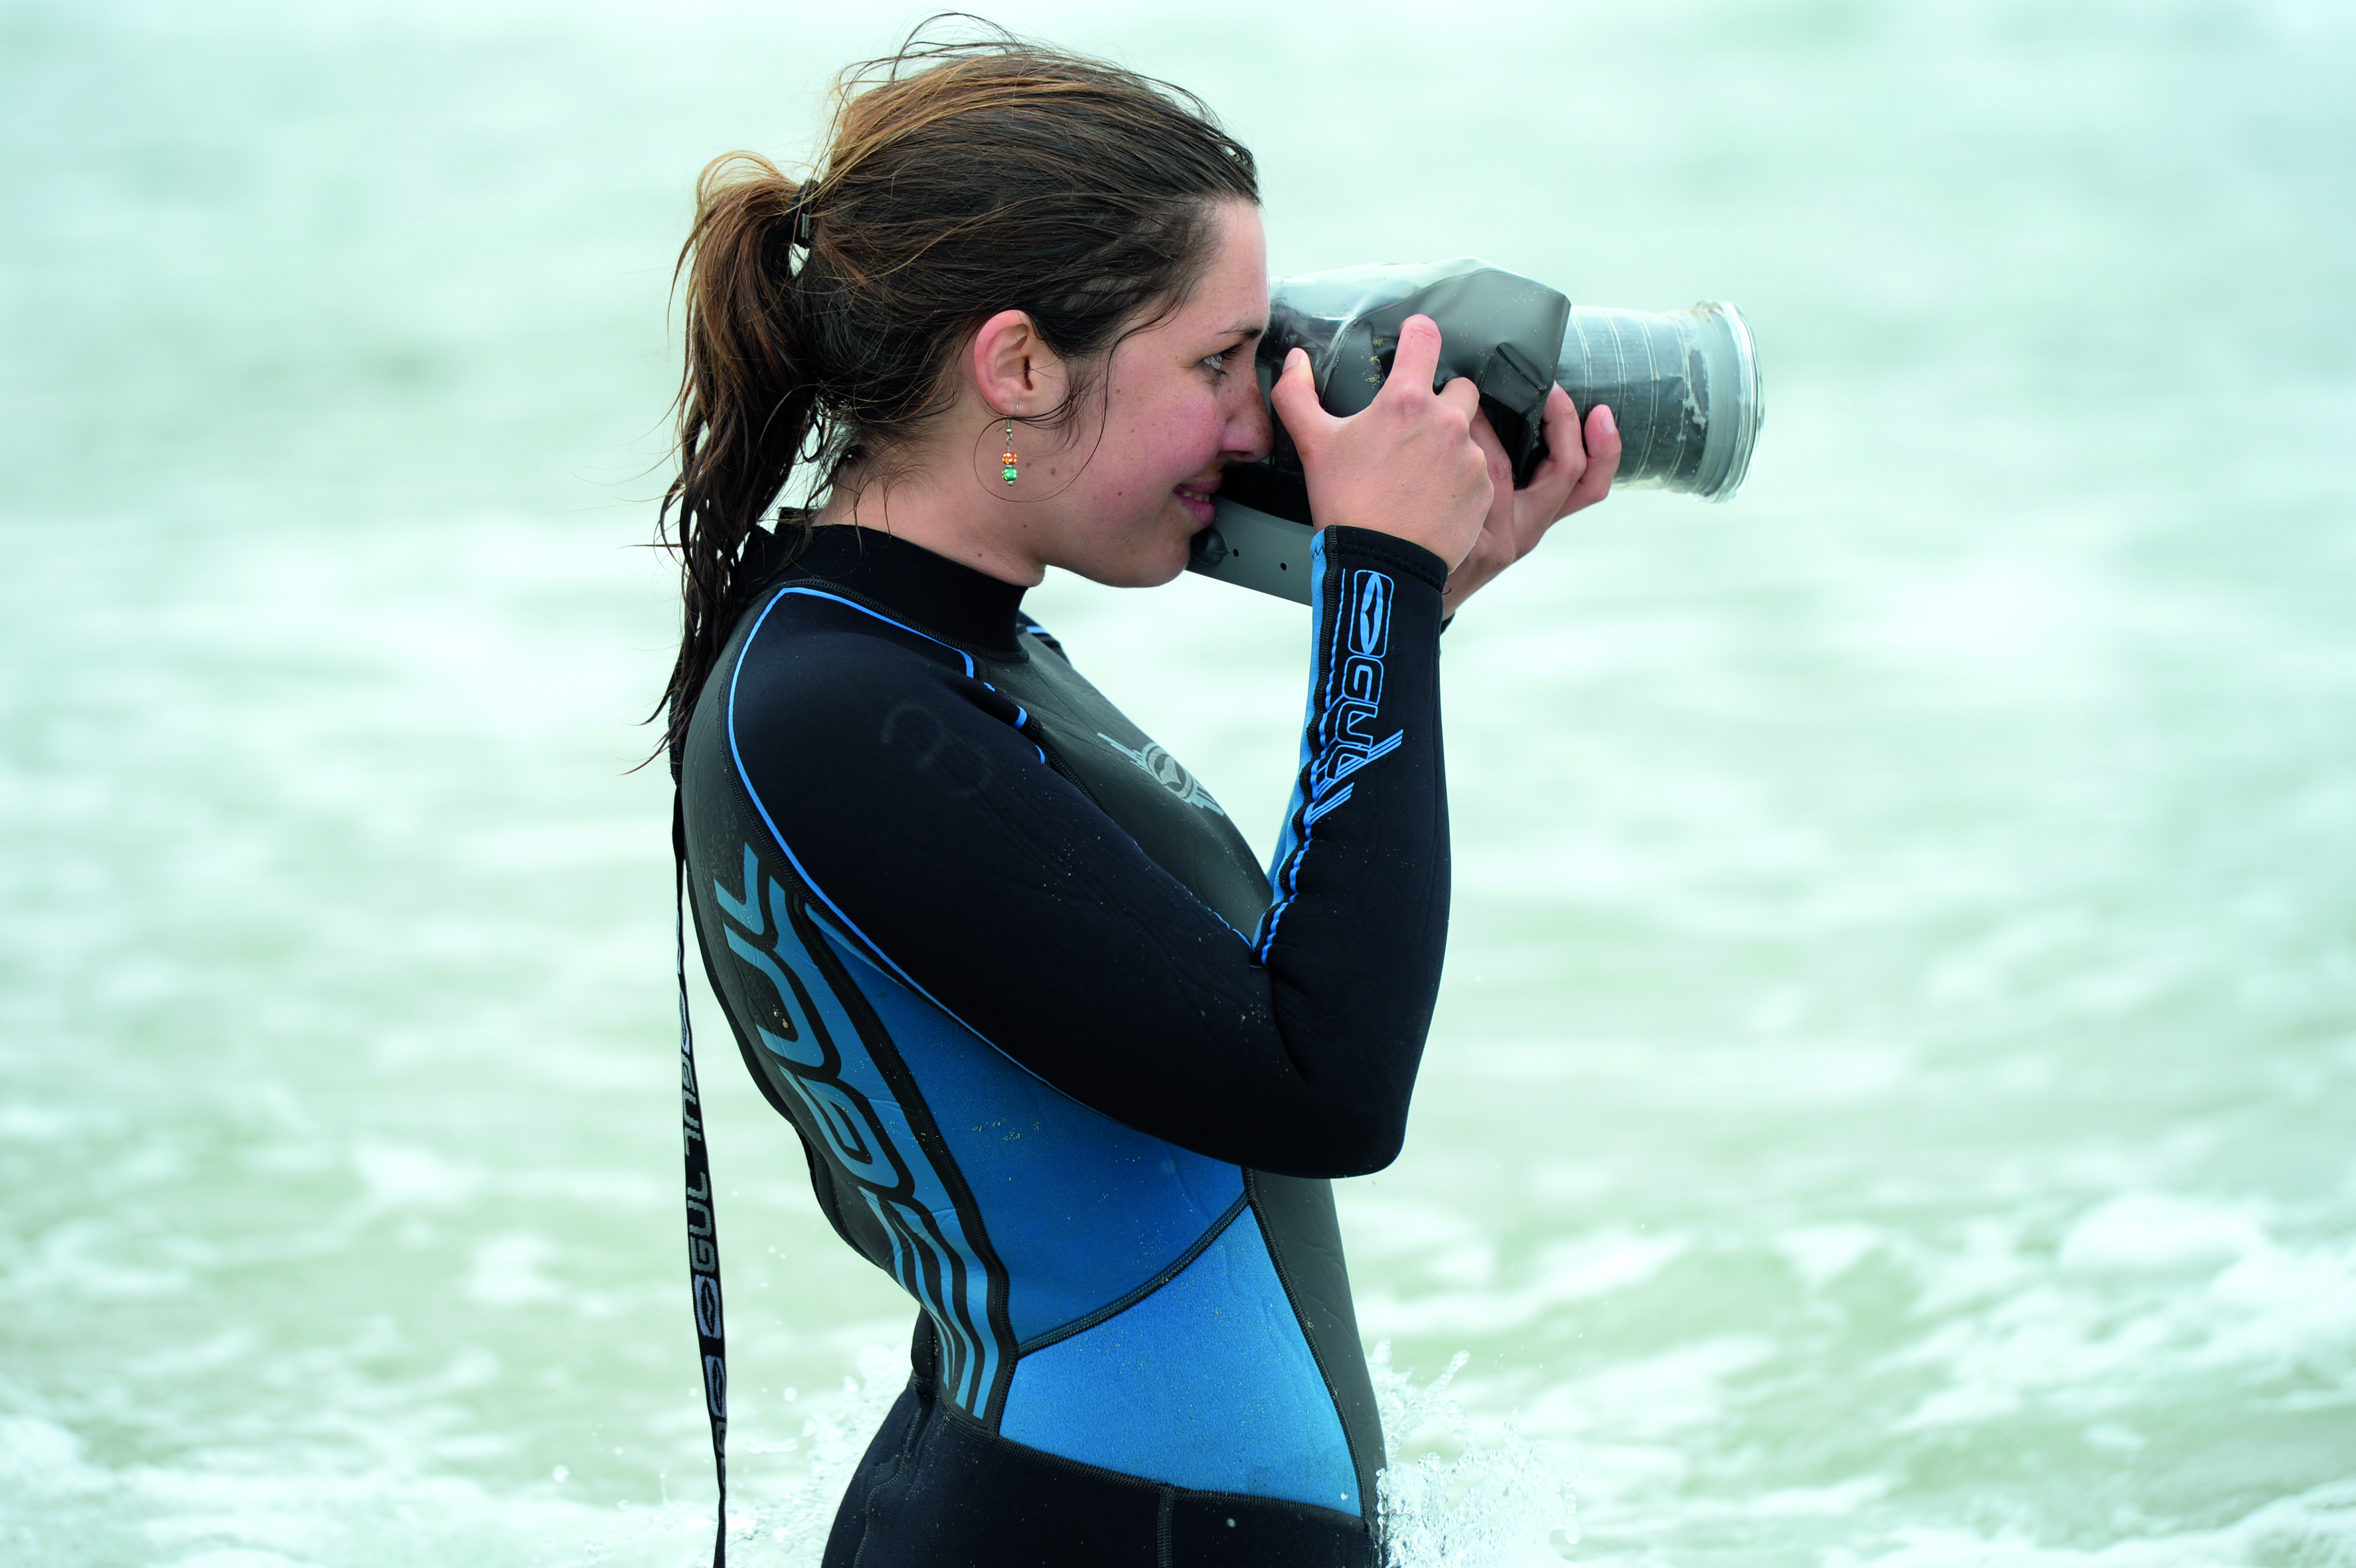 Surf Photography Beginner Guide